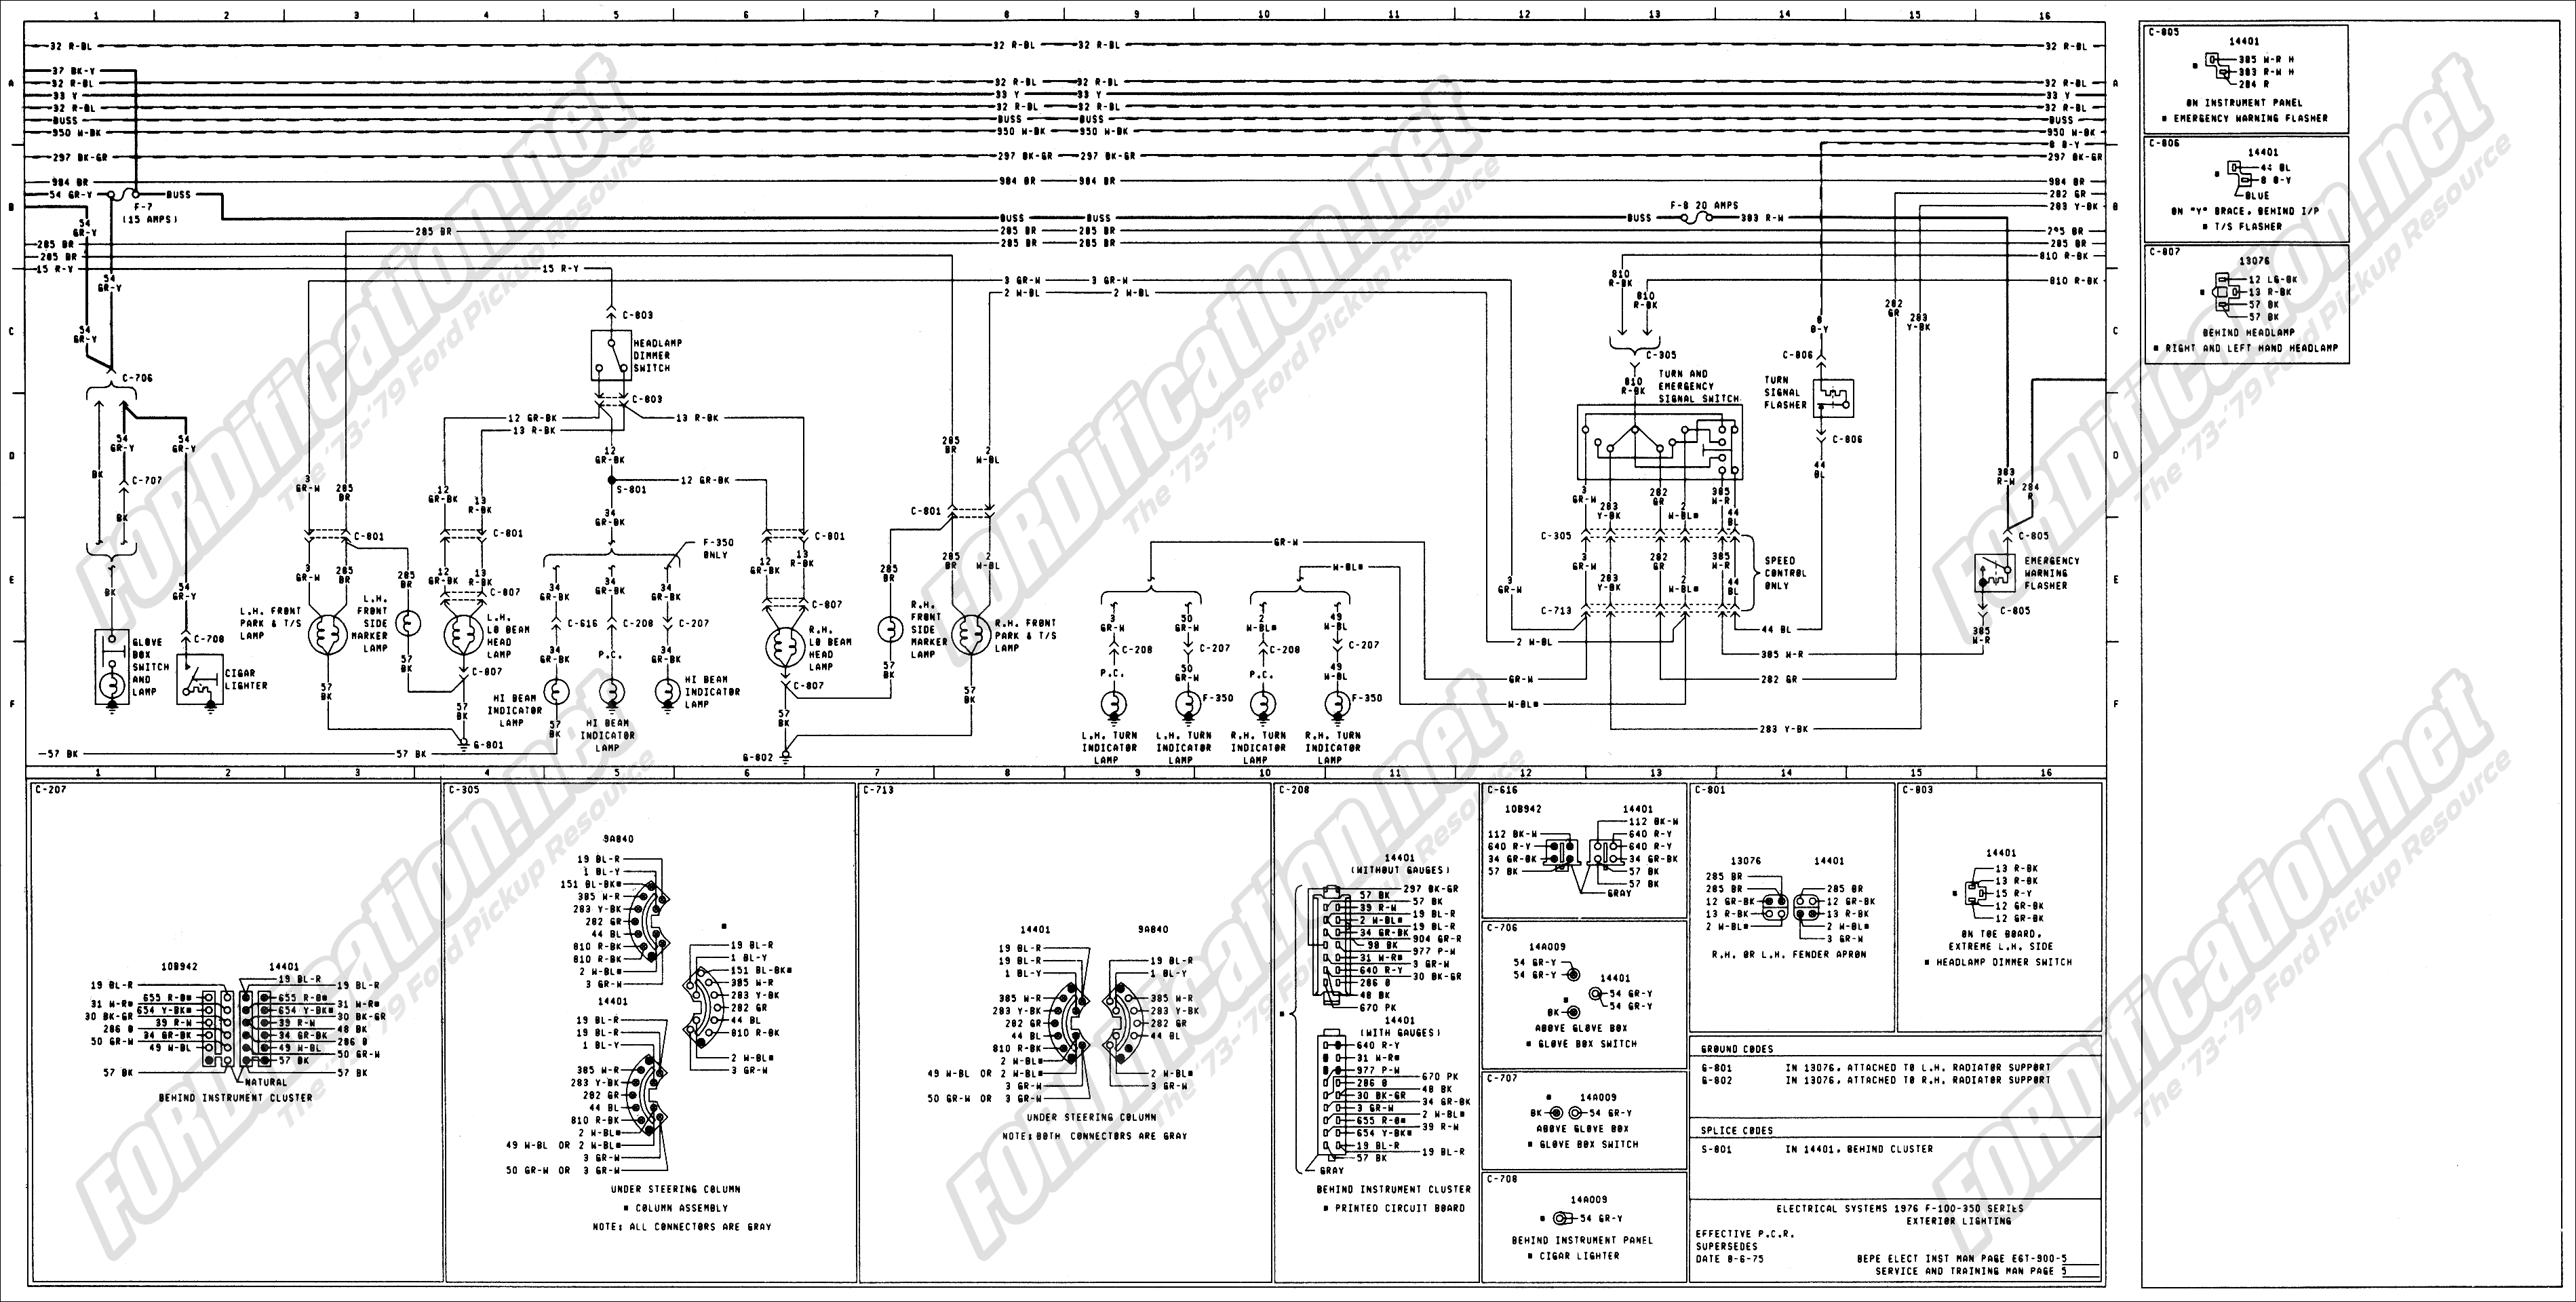 wiring_76master_5of9 1973 1979 ford truck wiring diagrams & schematics fordification net wiring diagrams for ford trucks at virtualis.co